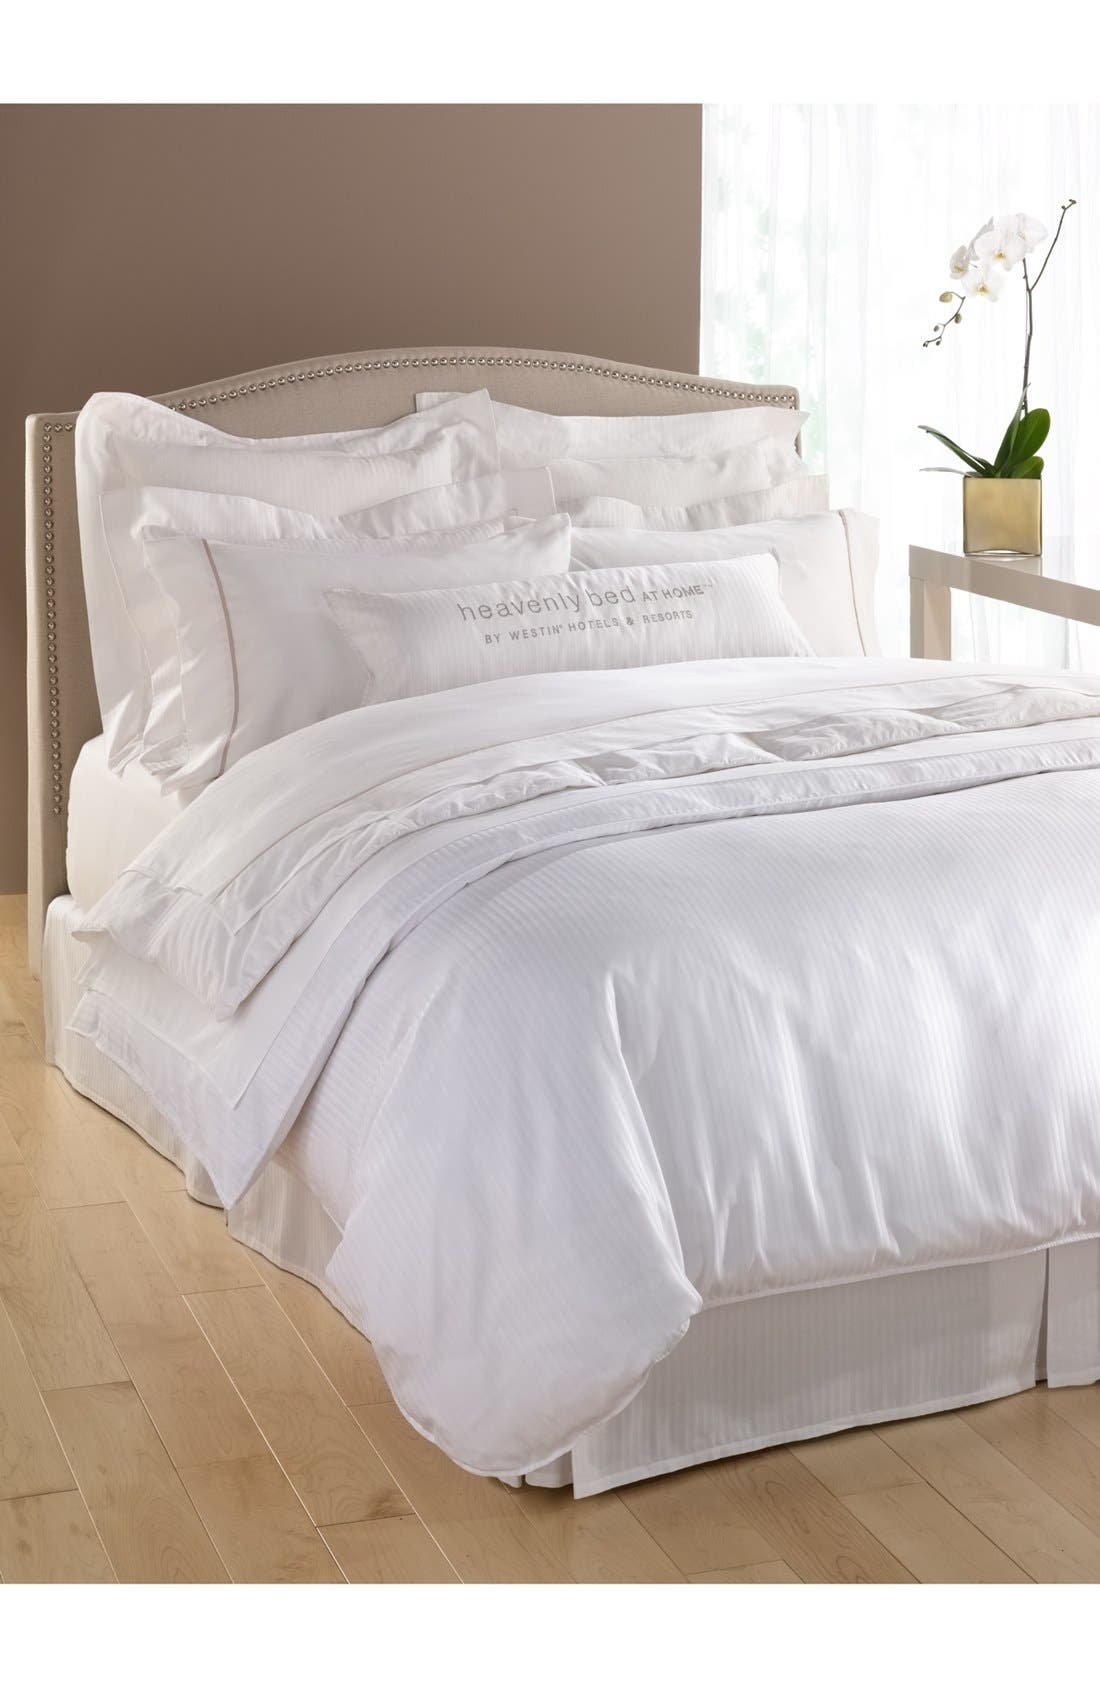 'Ultra Luxe' 600 Thread Count Flat Sheet,                             Alternate thumbnail 2, color,                             100